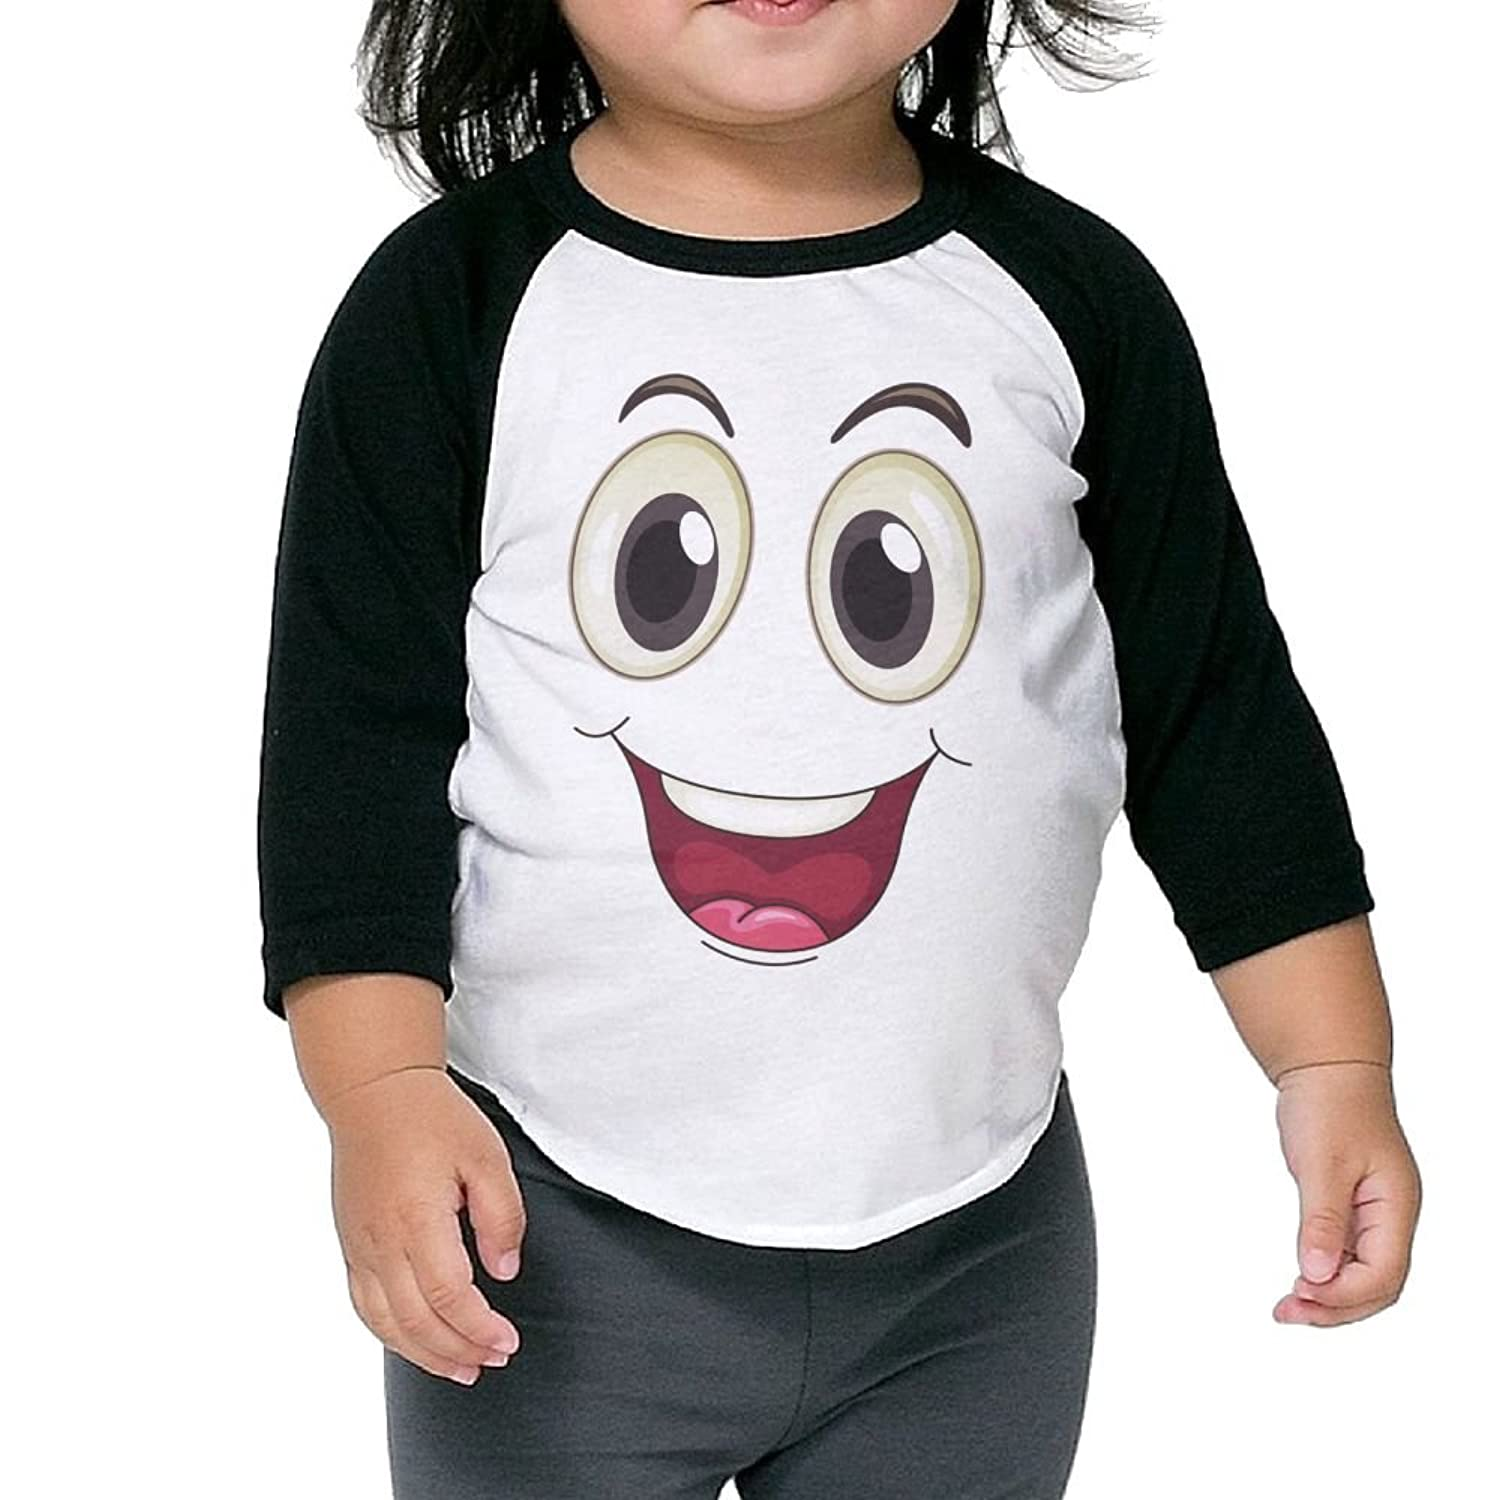 CHENLY Unisex Kid's Sleeves Warm Big Emoji Smile Cotton 3/4 Sleeves T-Shirt For Child for sale